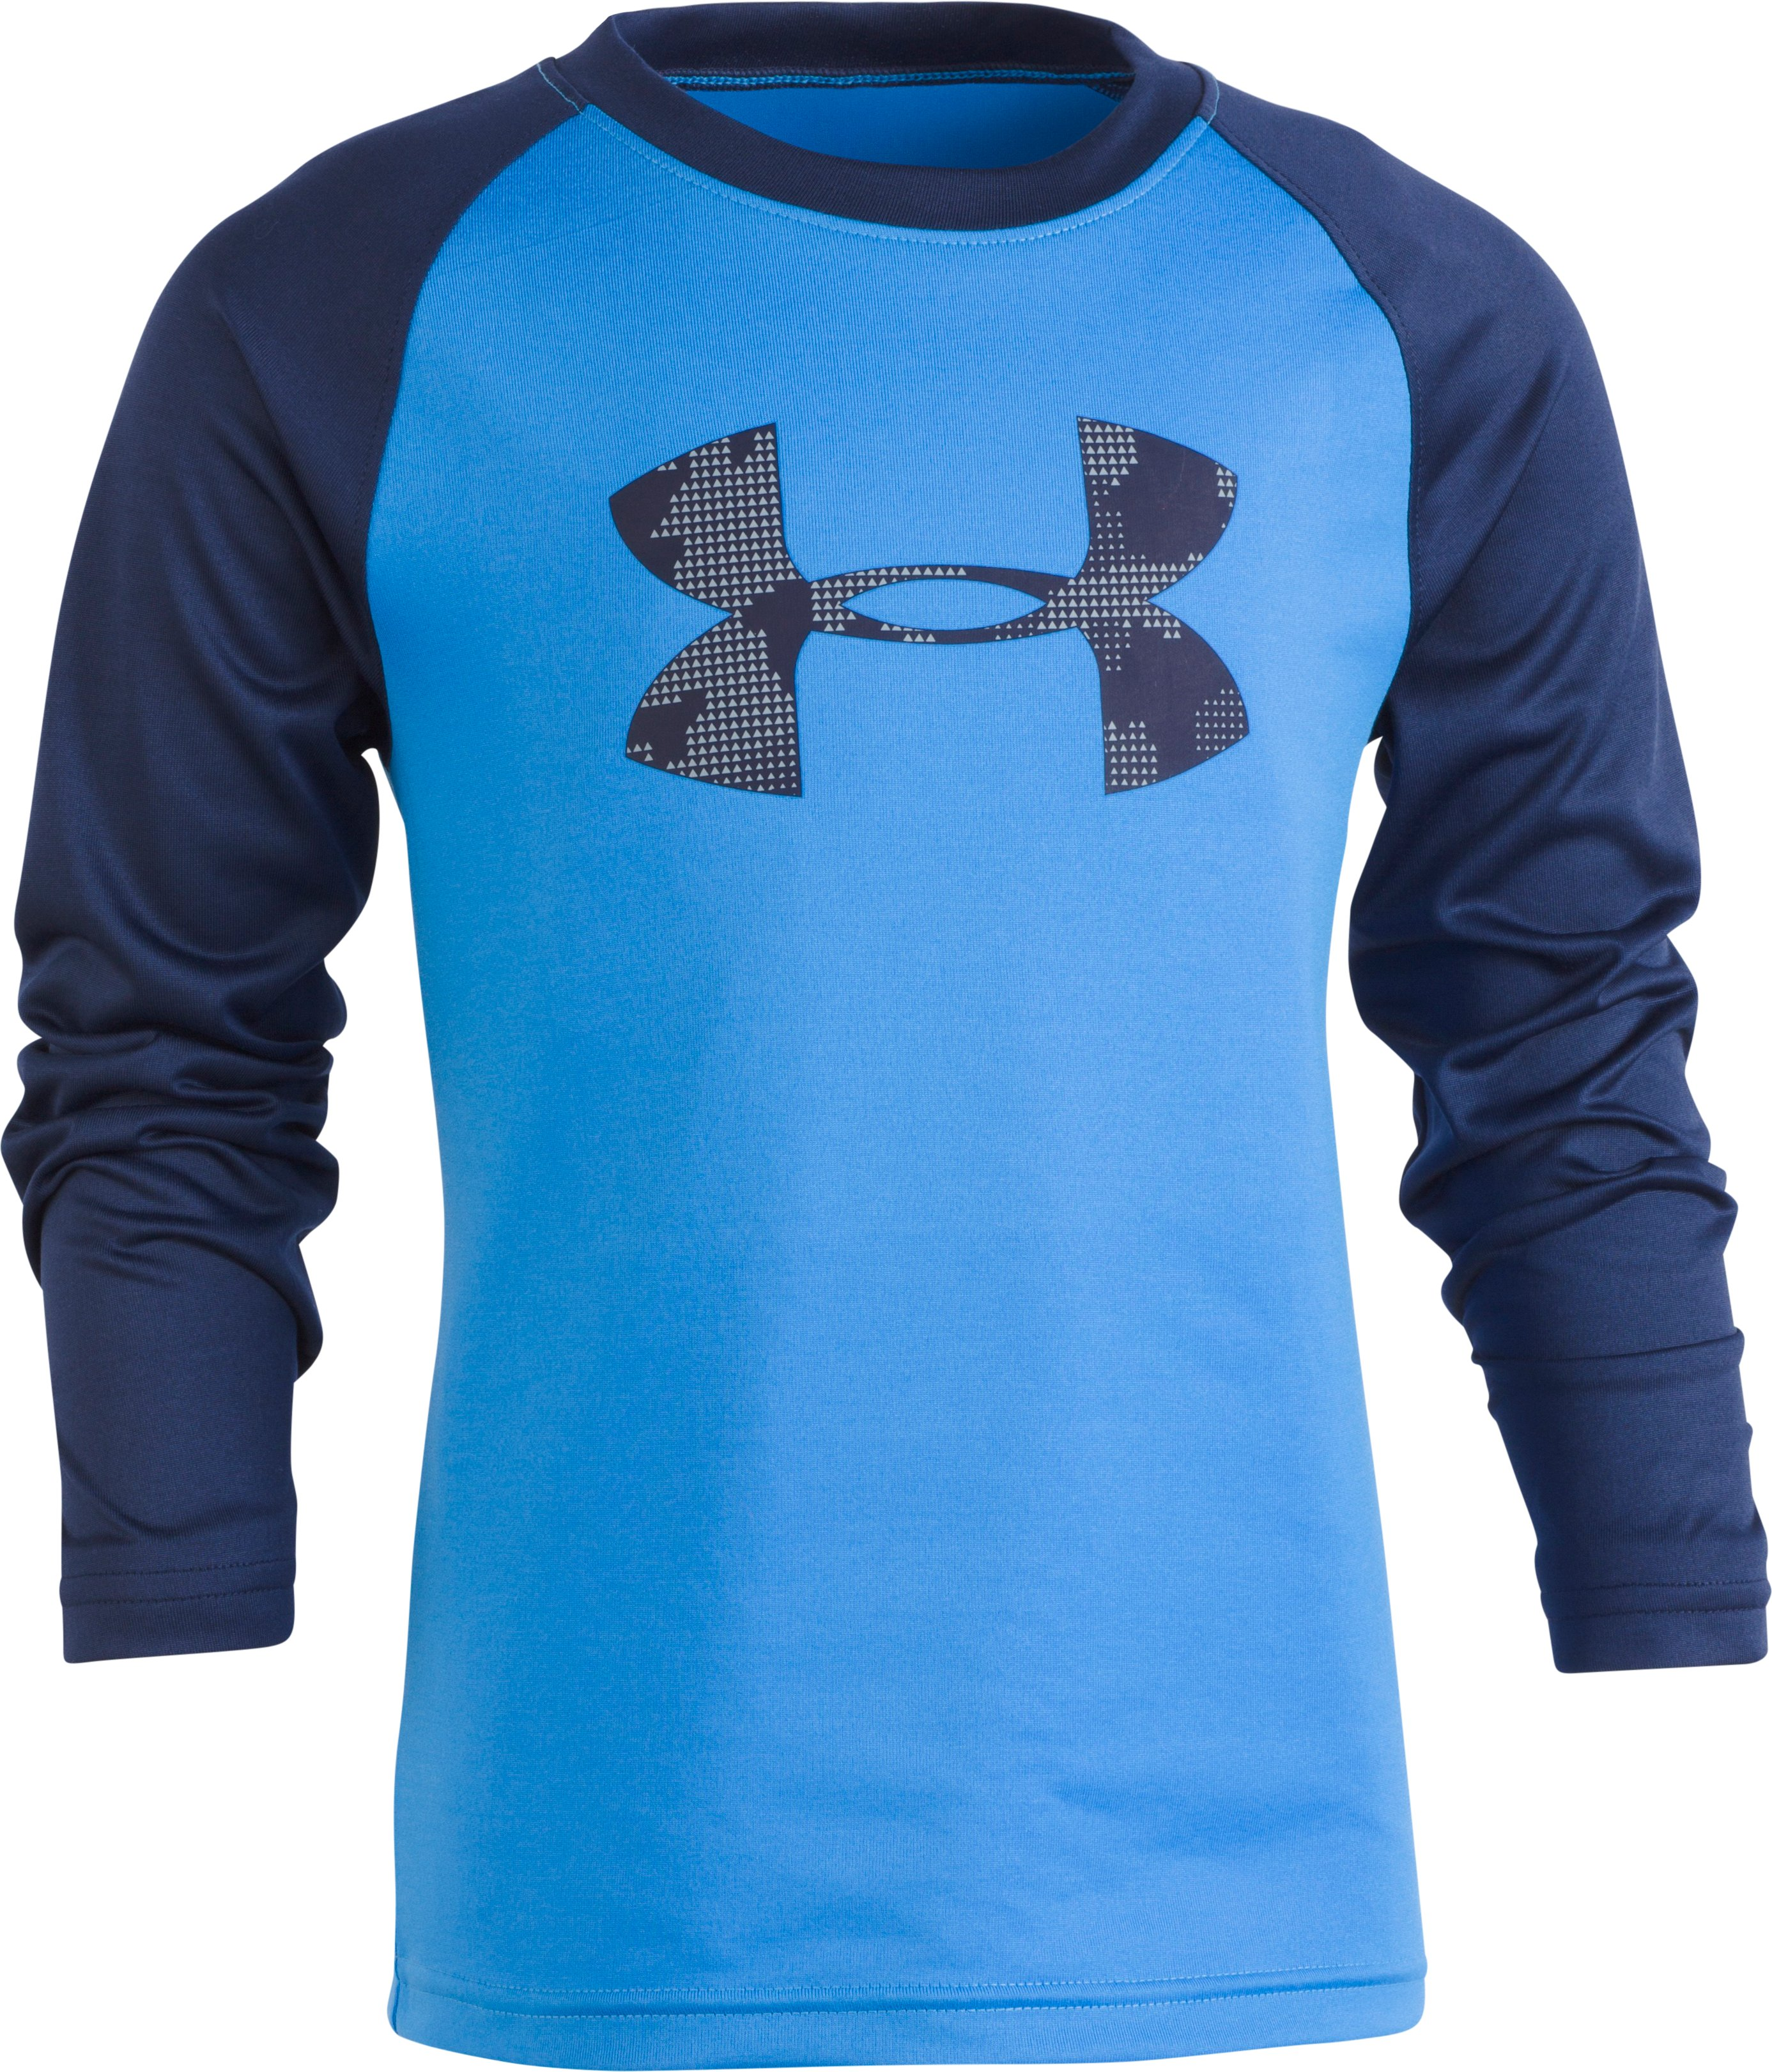 Boys' Pre-School UA Utility Camo Big Logo Long Sleeve, Mako Blue